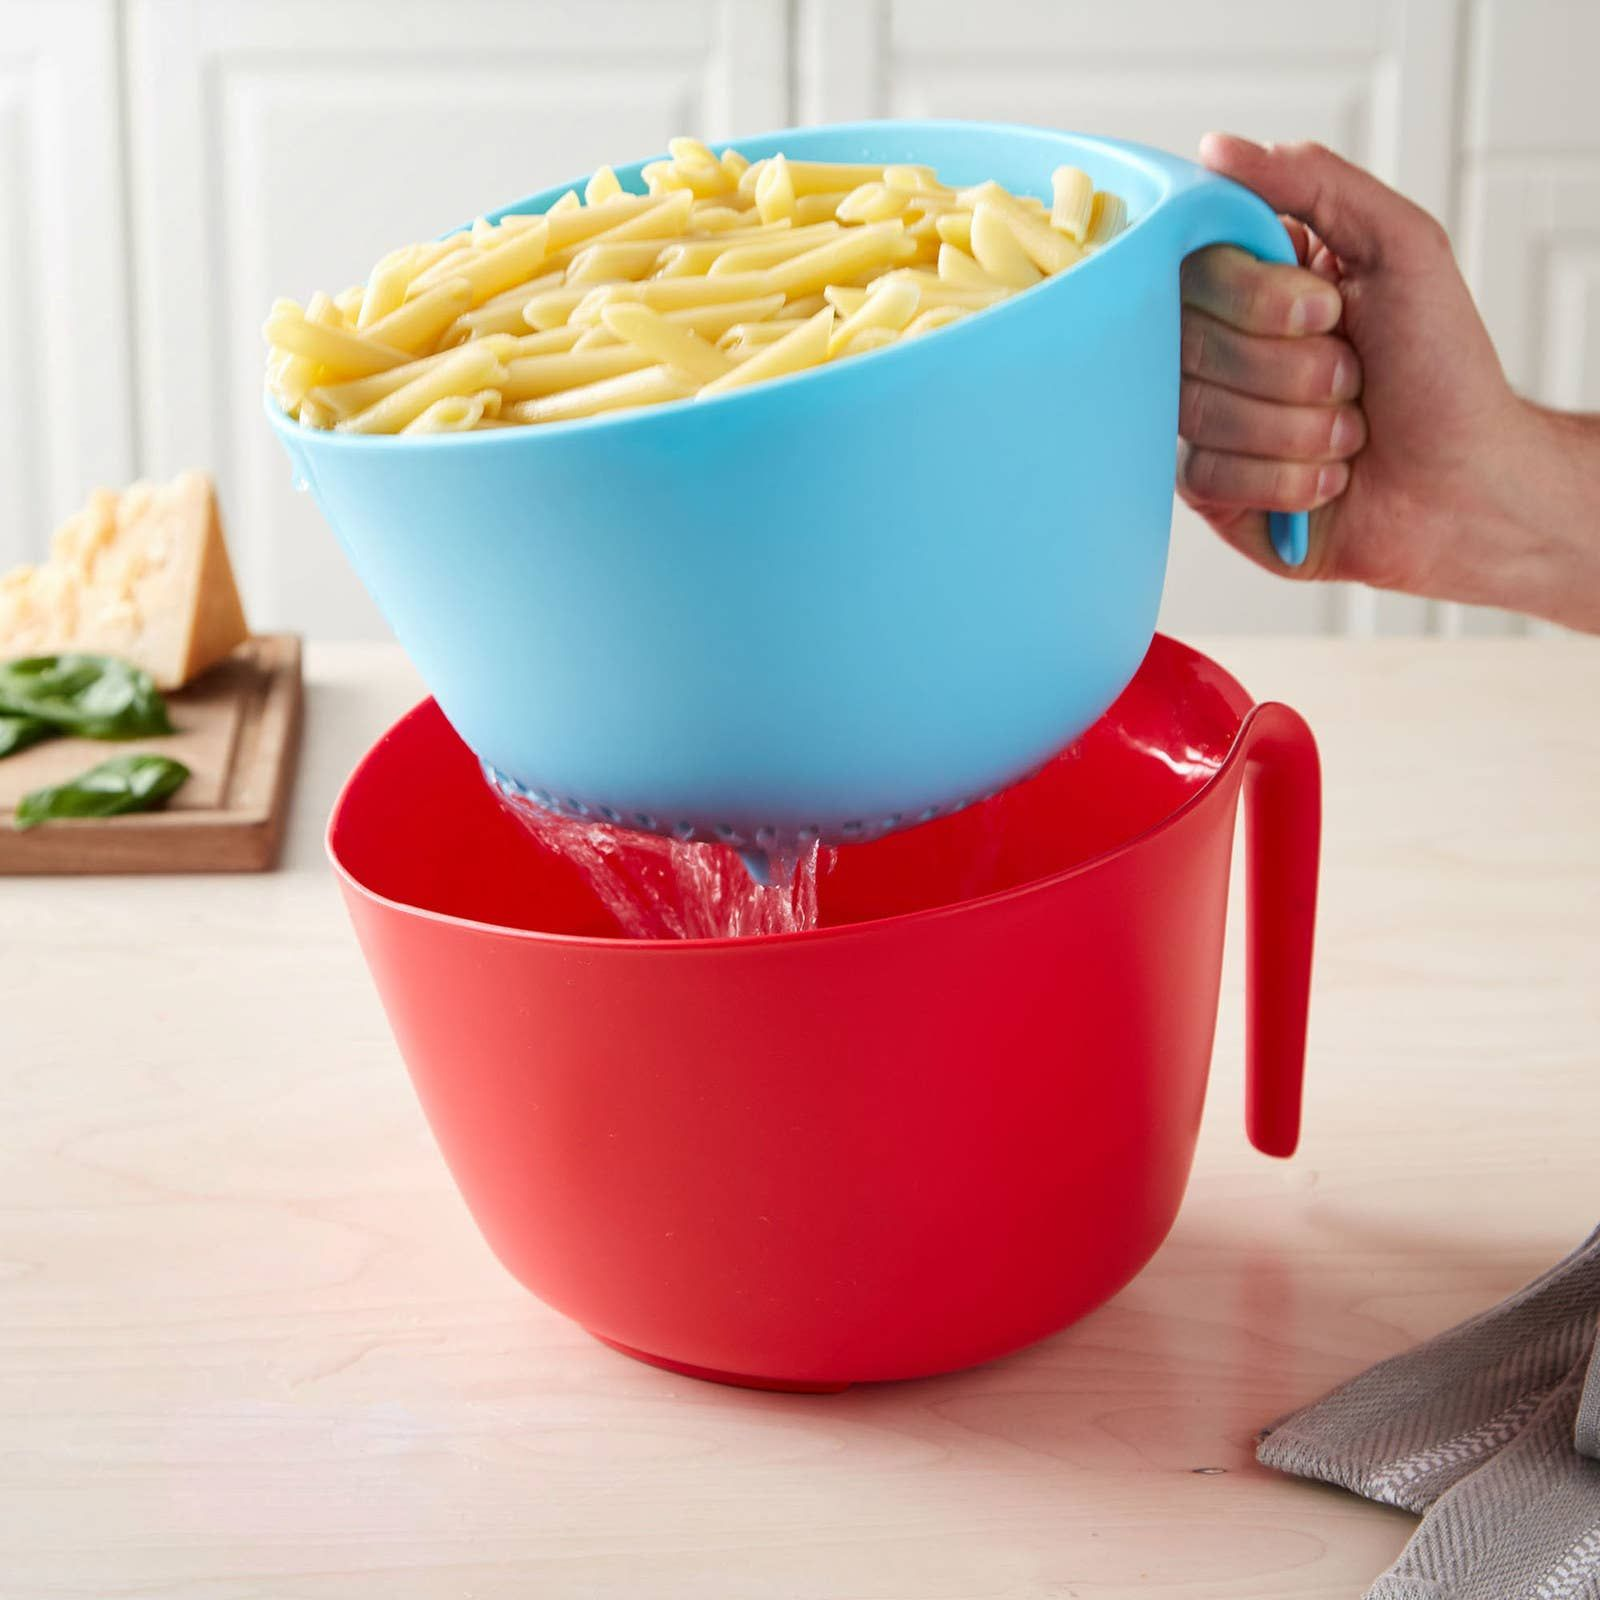 21 Products For Your New Kitchen That You Need Asap Basic Kitchen Tasty Buzzfeed Tasty